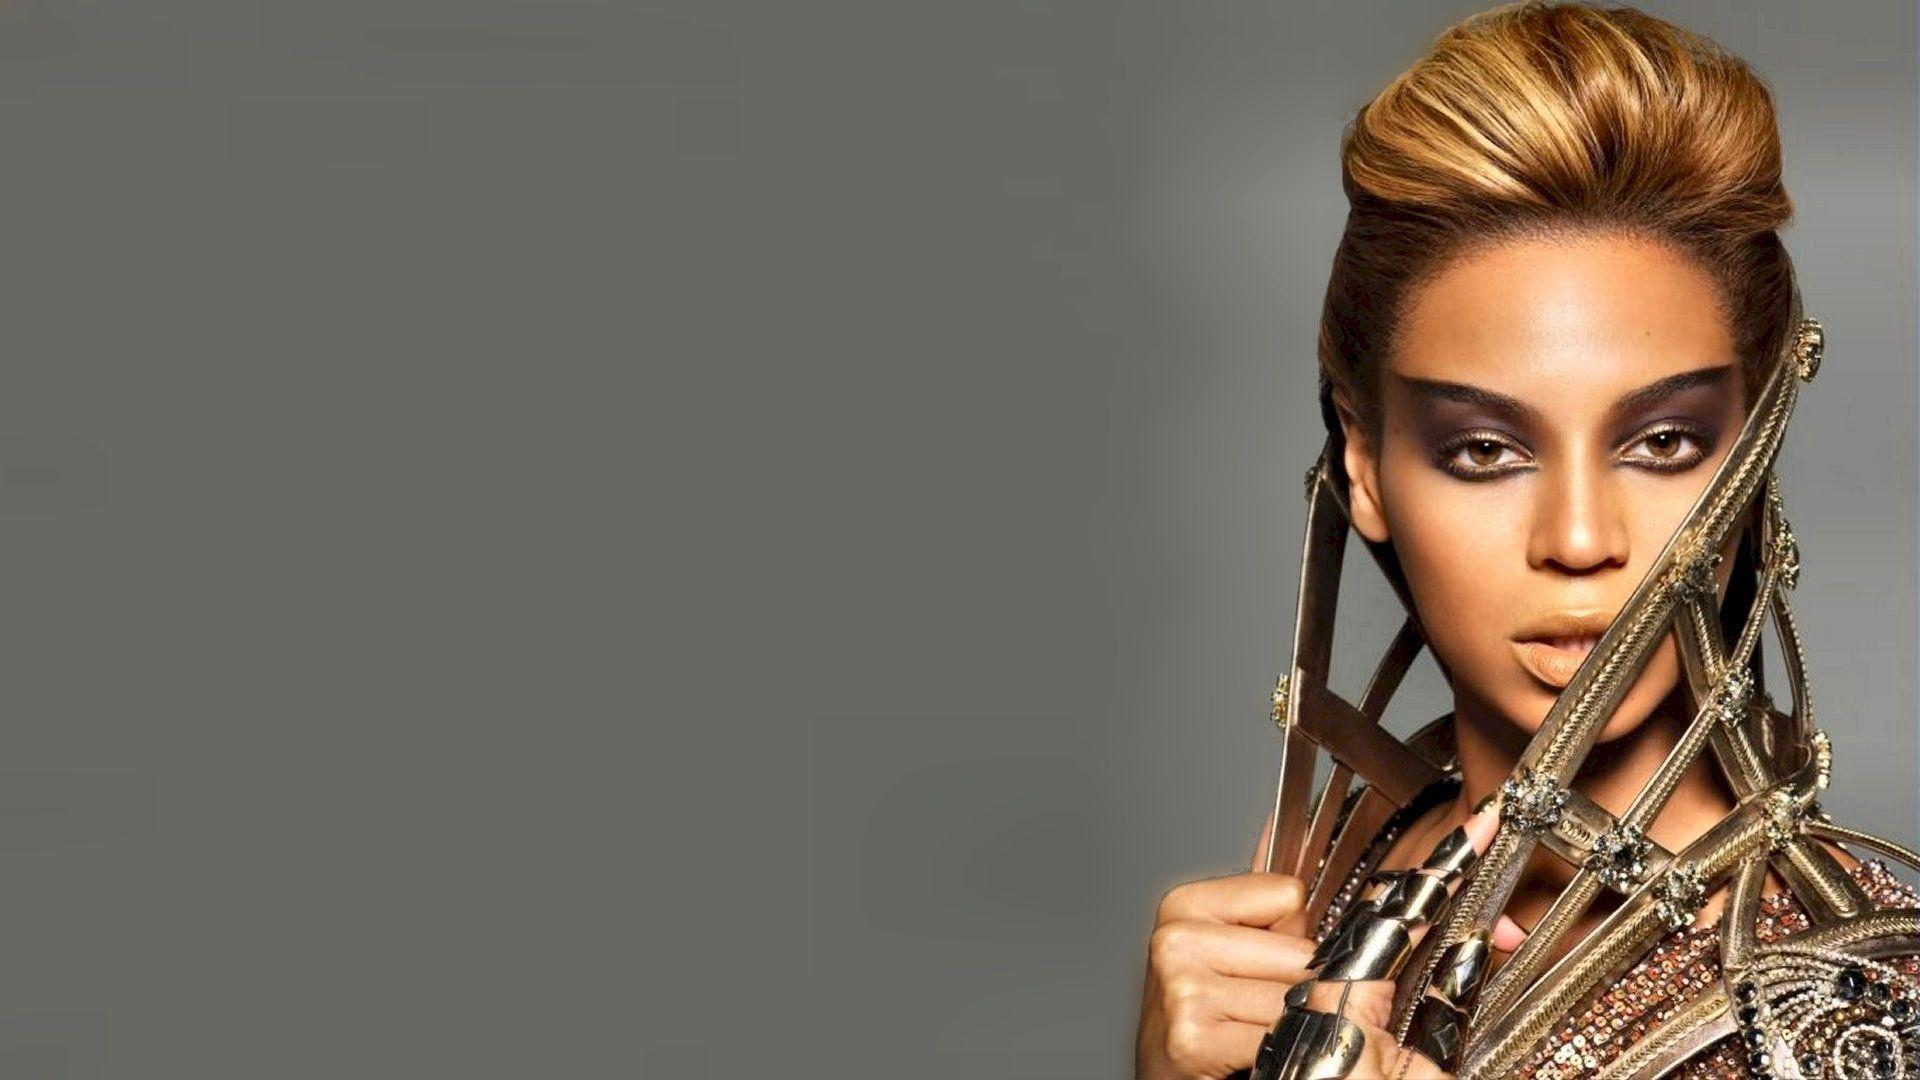 Beyonce Wallpapers 7 Backgrounds